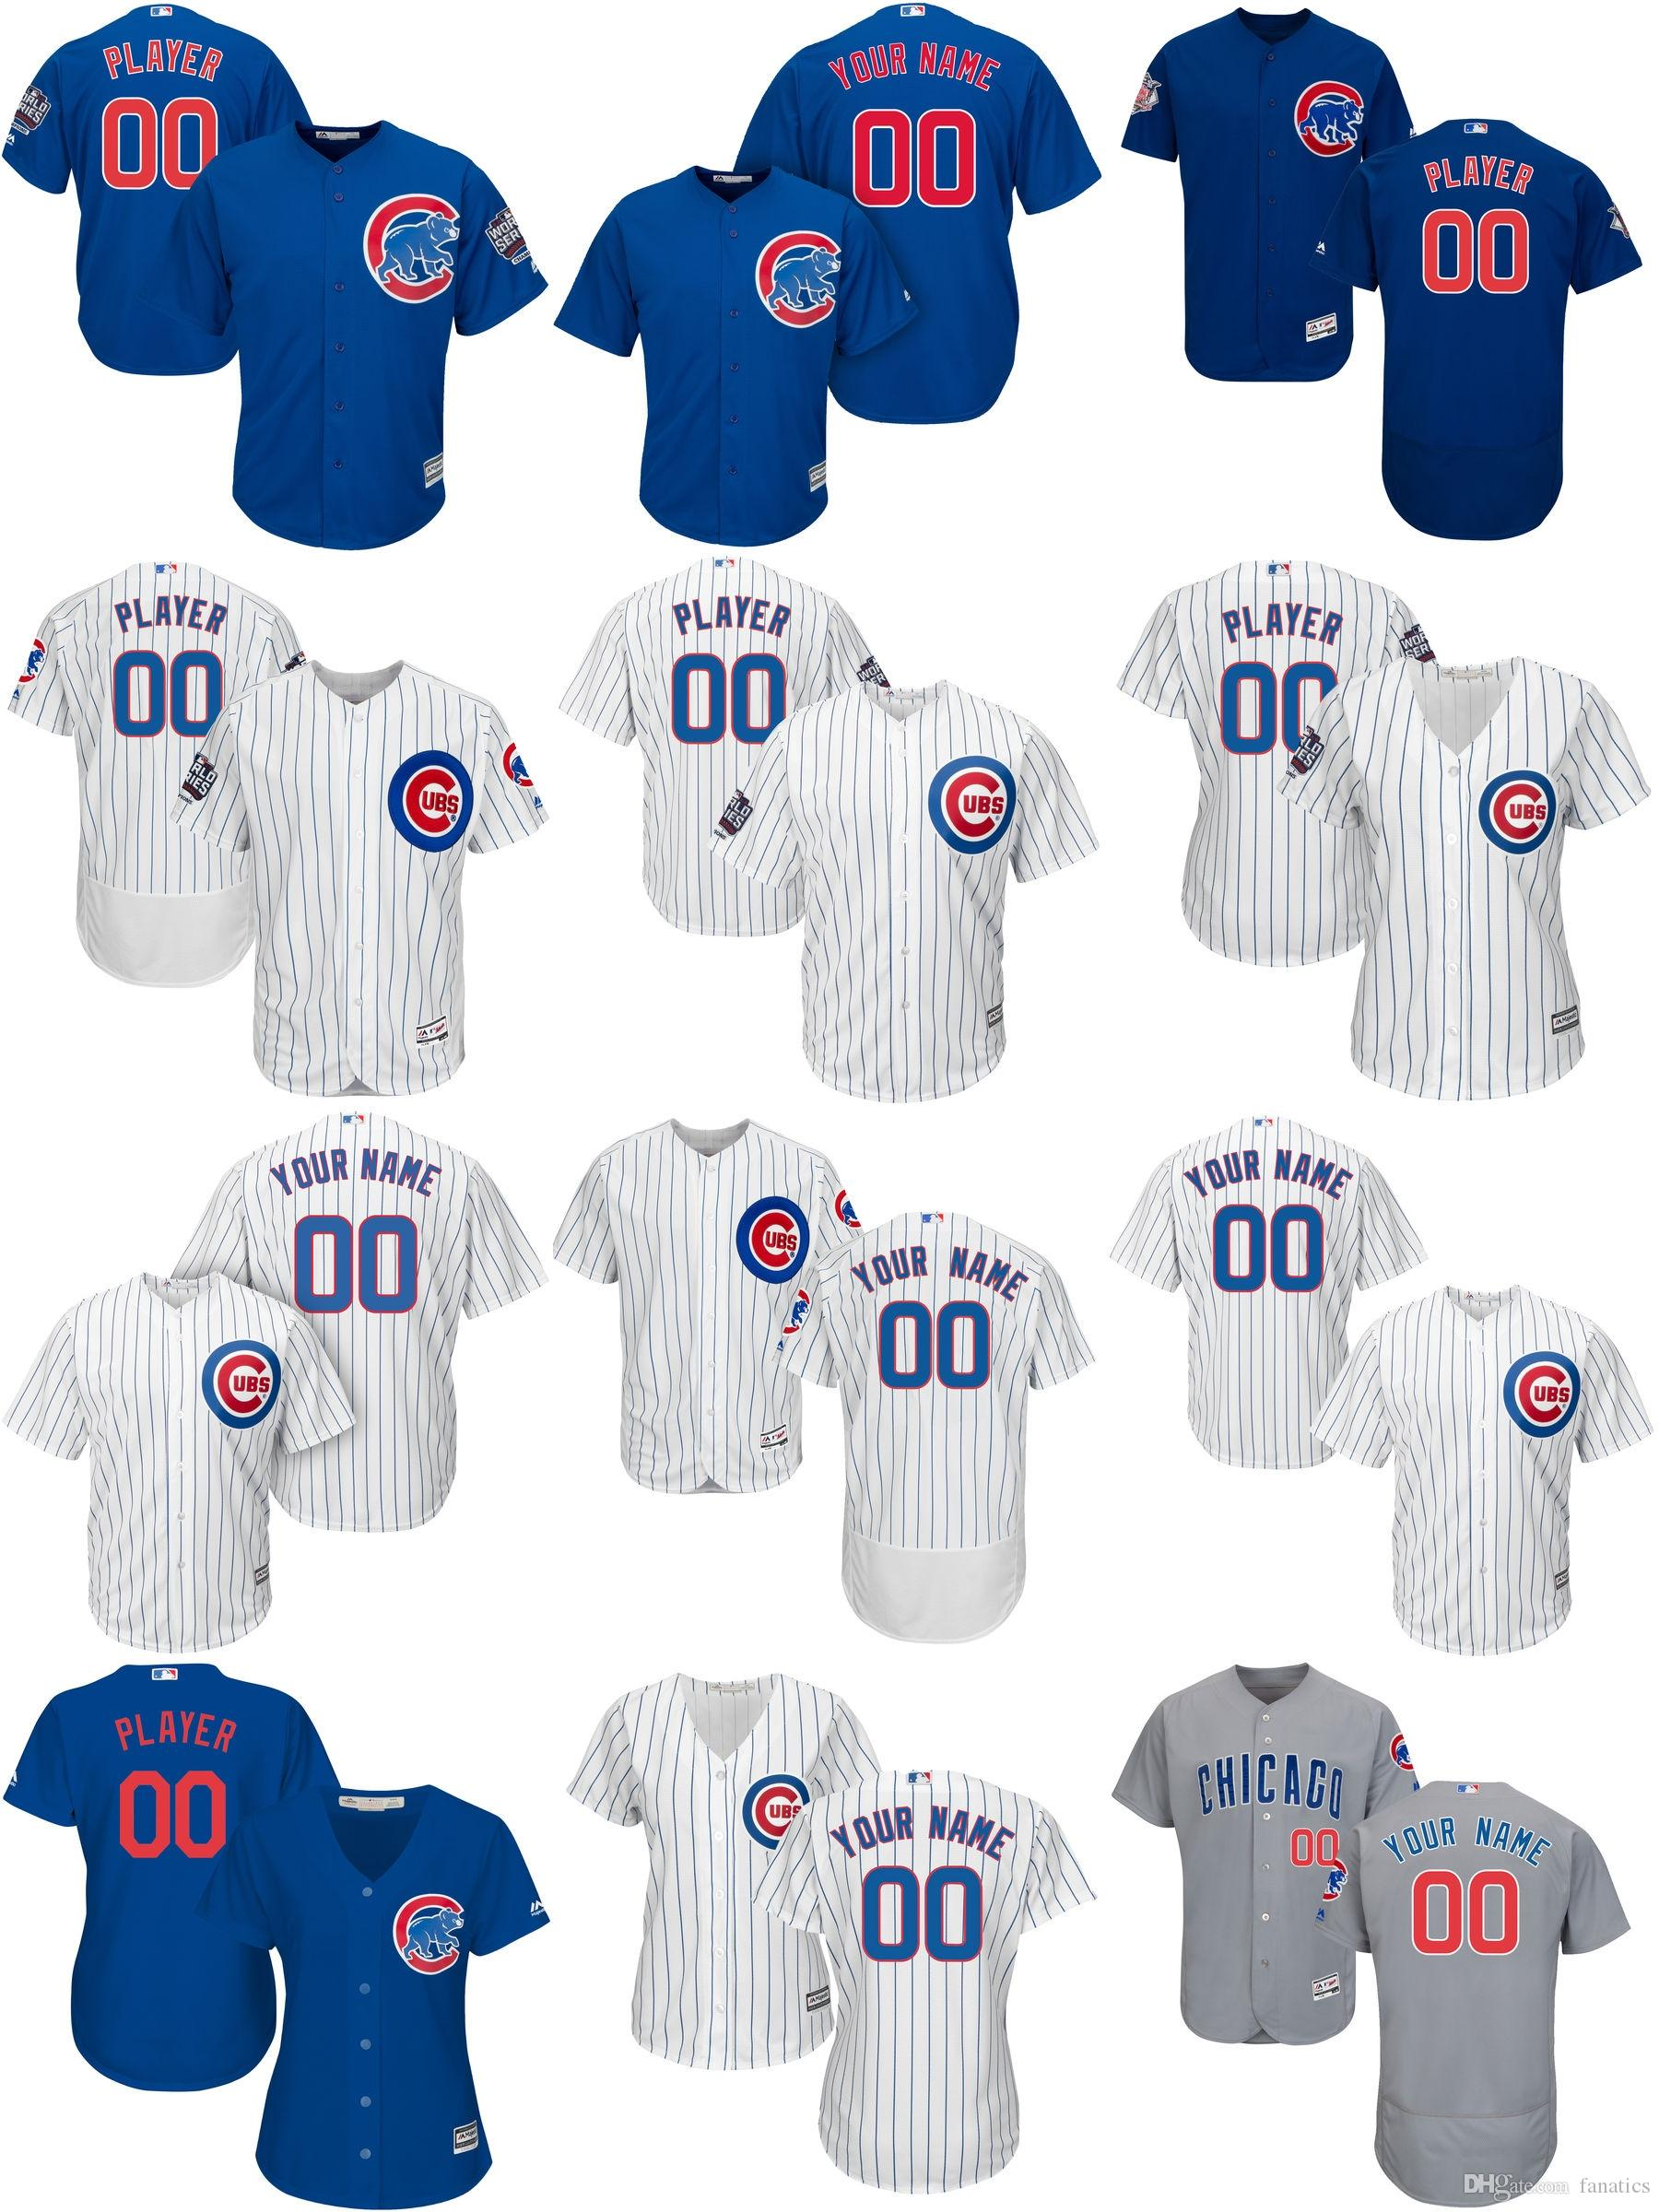 975fb5bbe54 ... Mens Womens Kids Customized Personalized Any Name Any Number Chicago  Cubs 2016 World Series Champions Blue .